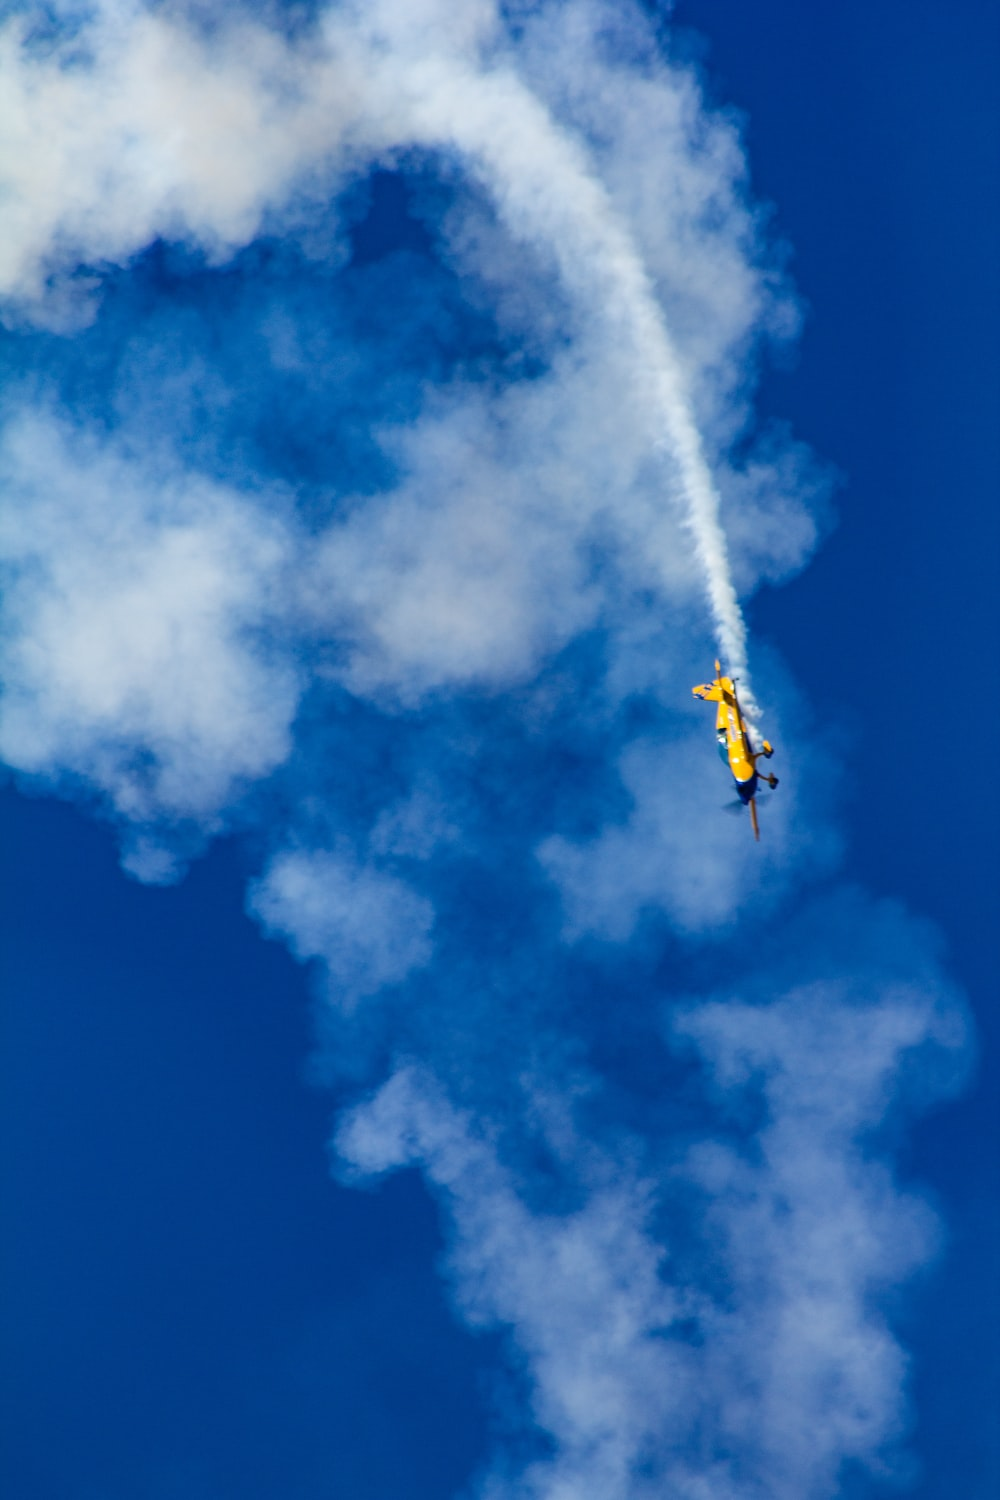 yellow plane in aerial show